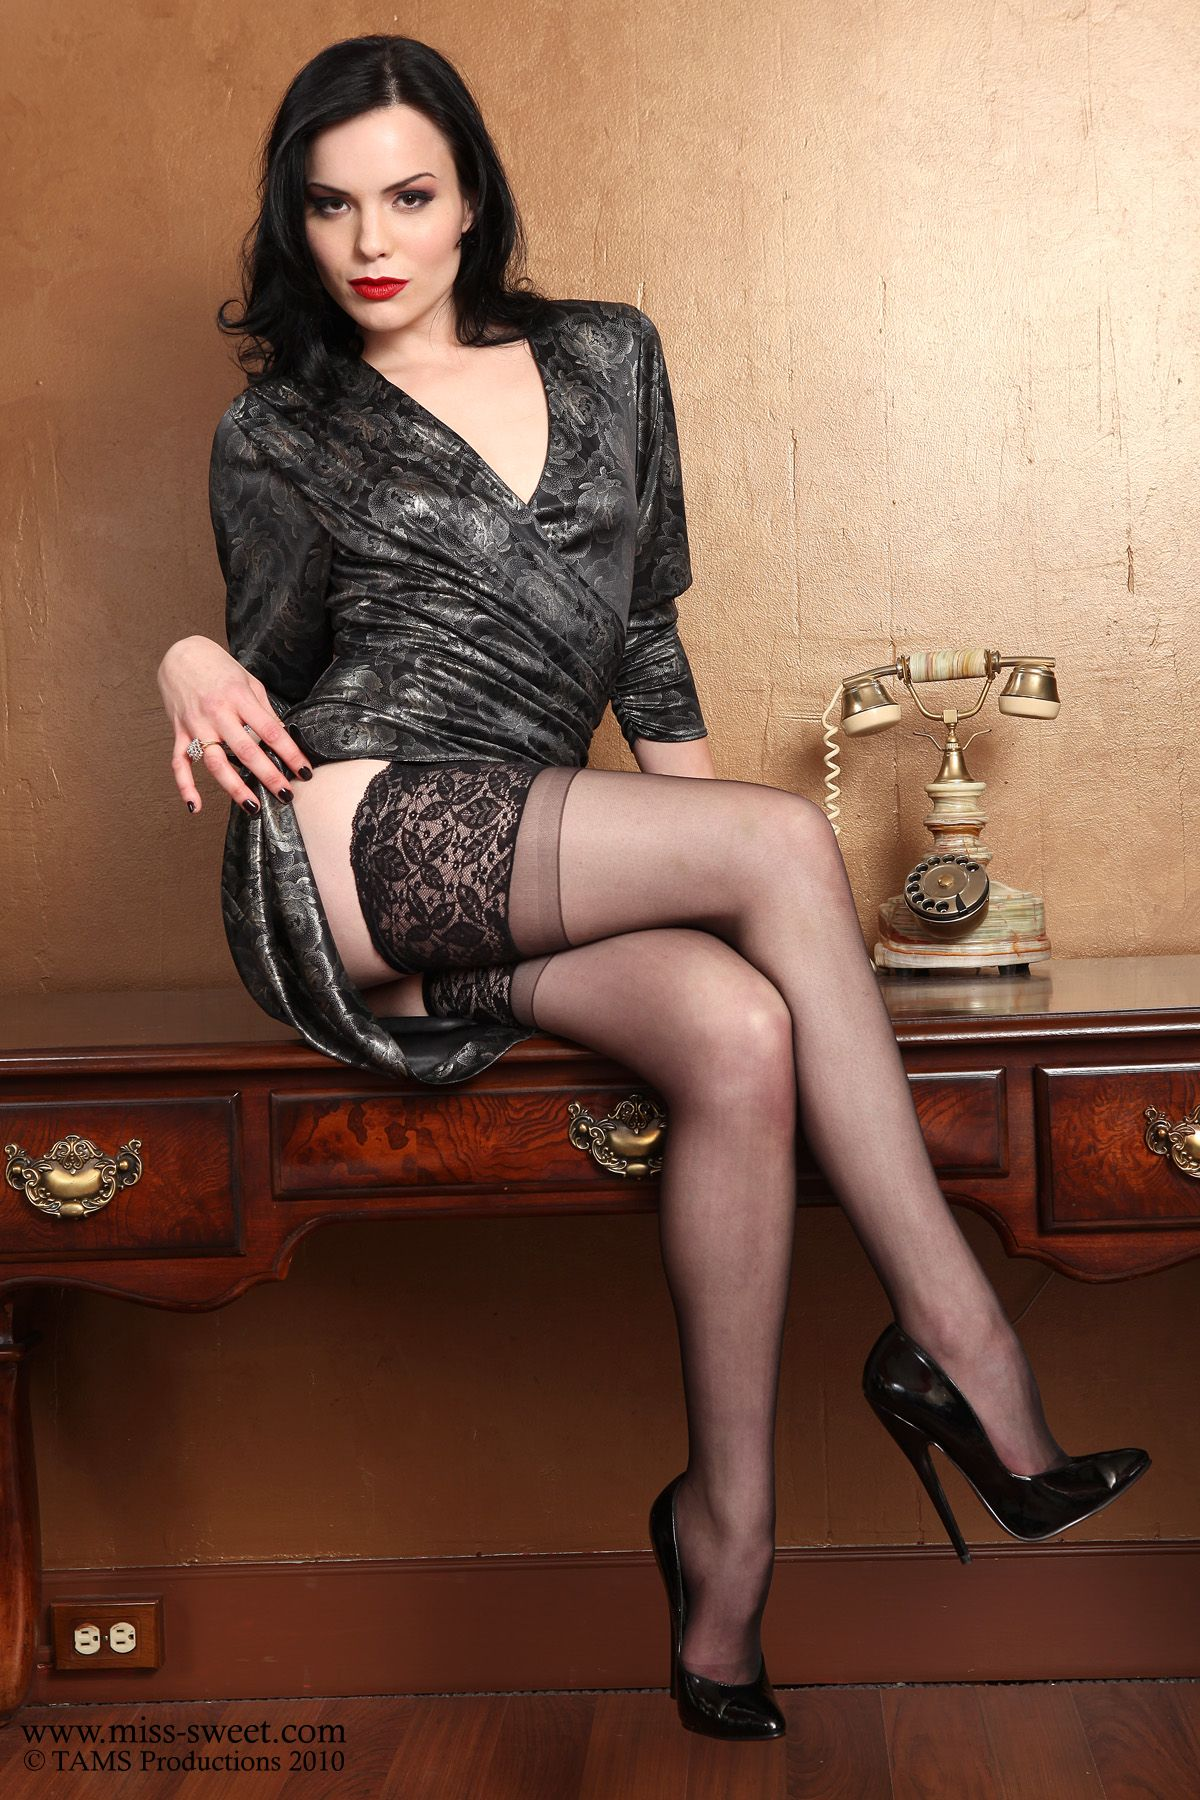 Hot black stockings and legs